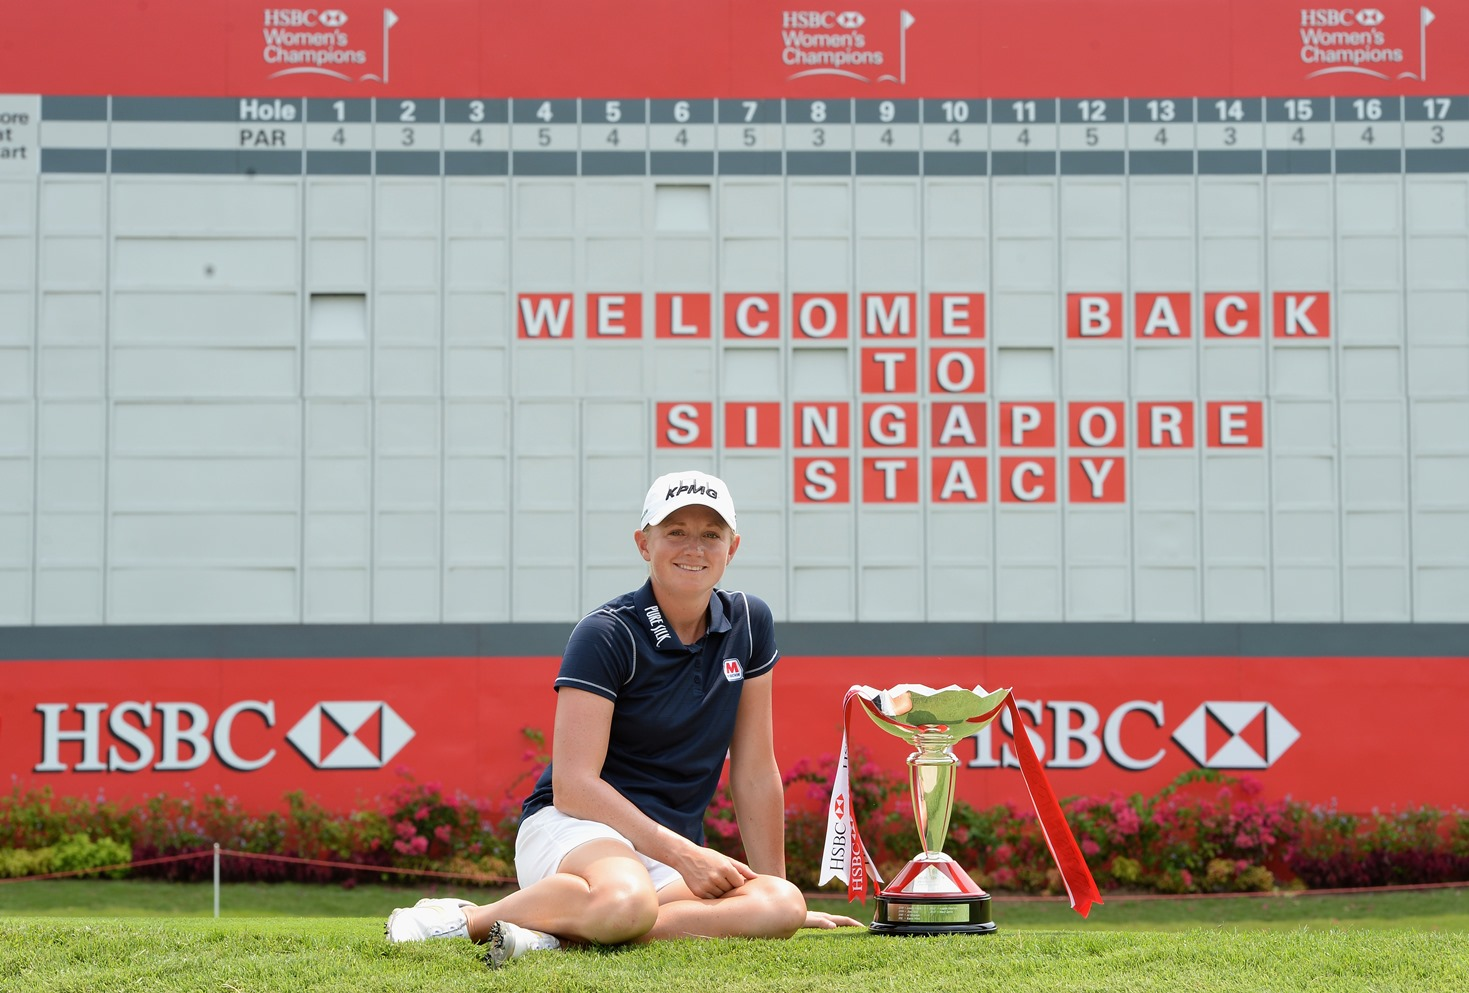 Defending champion Stacy Lewis returns to HWC 2014.jpg